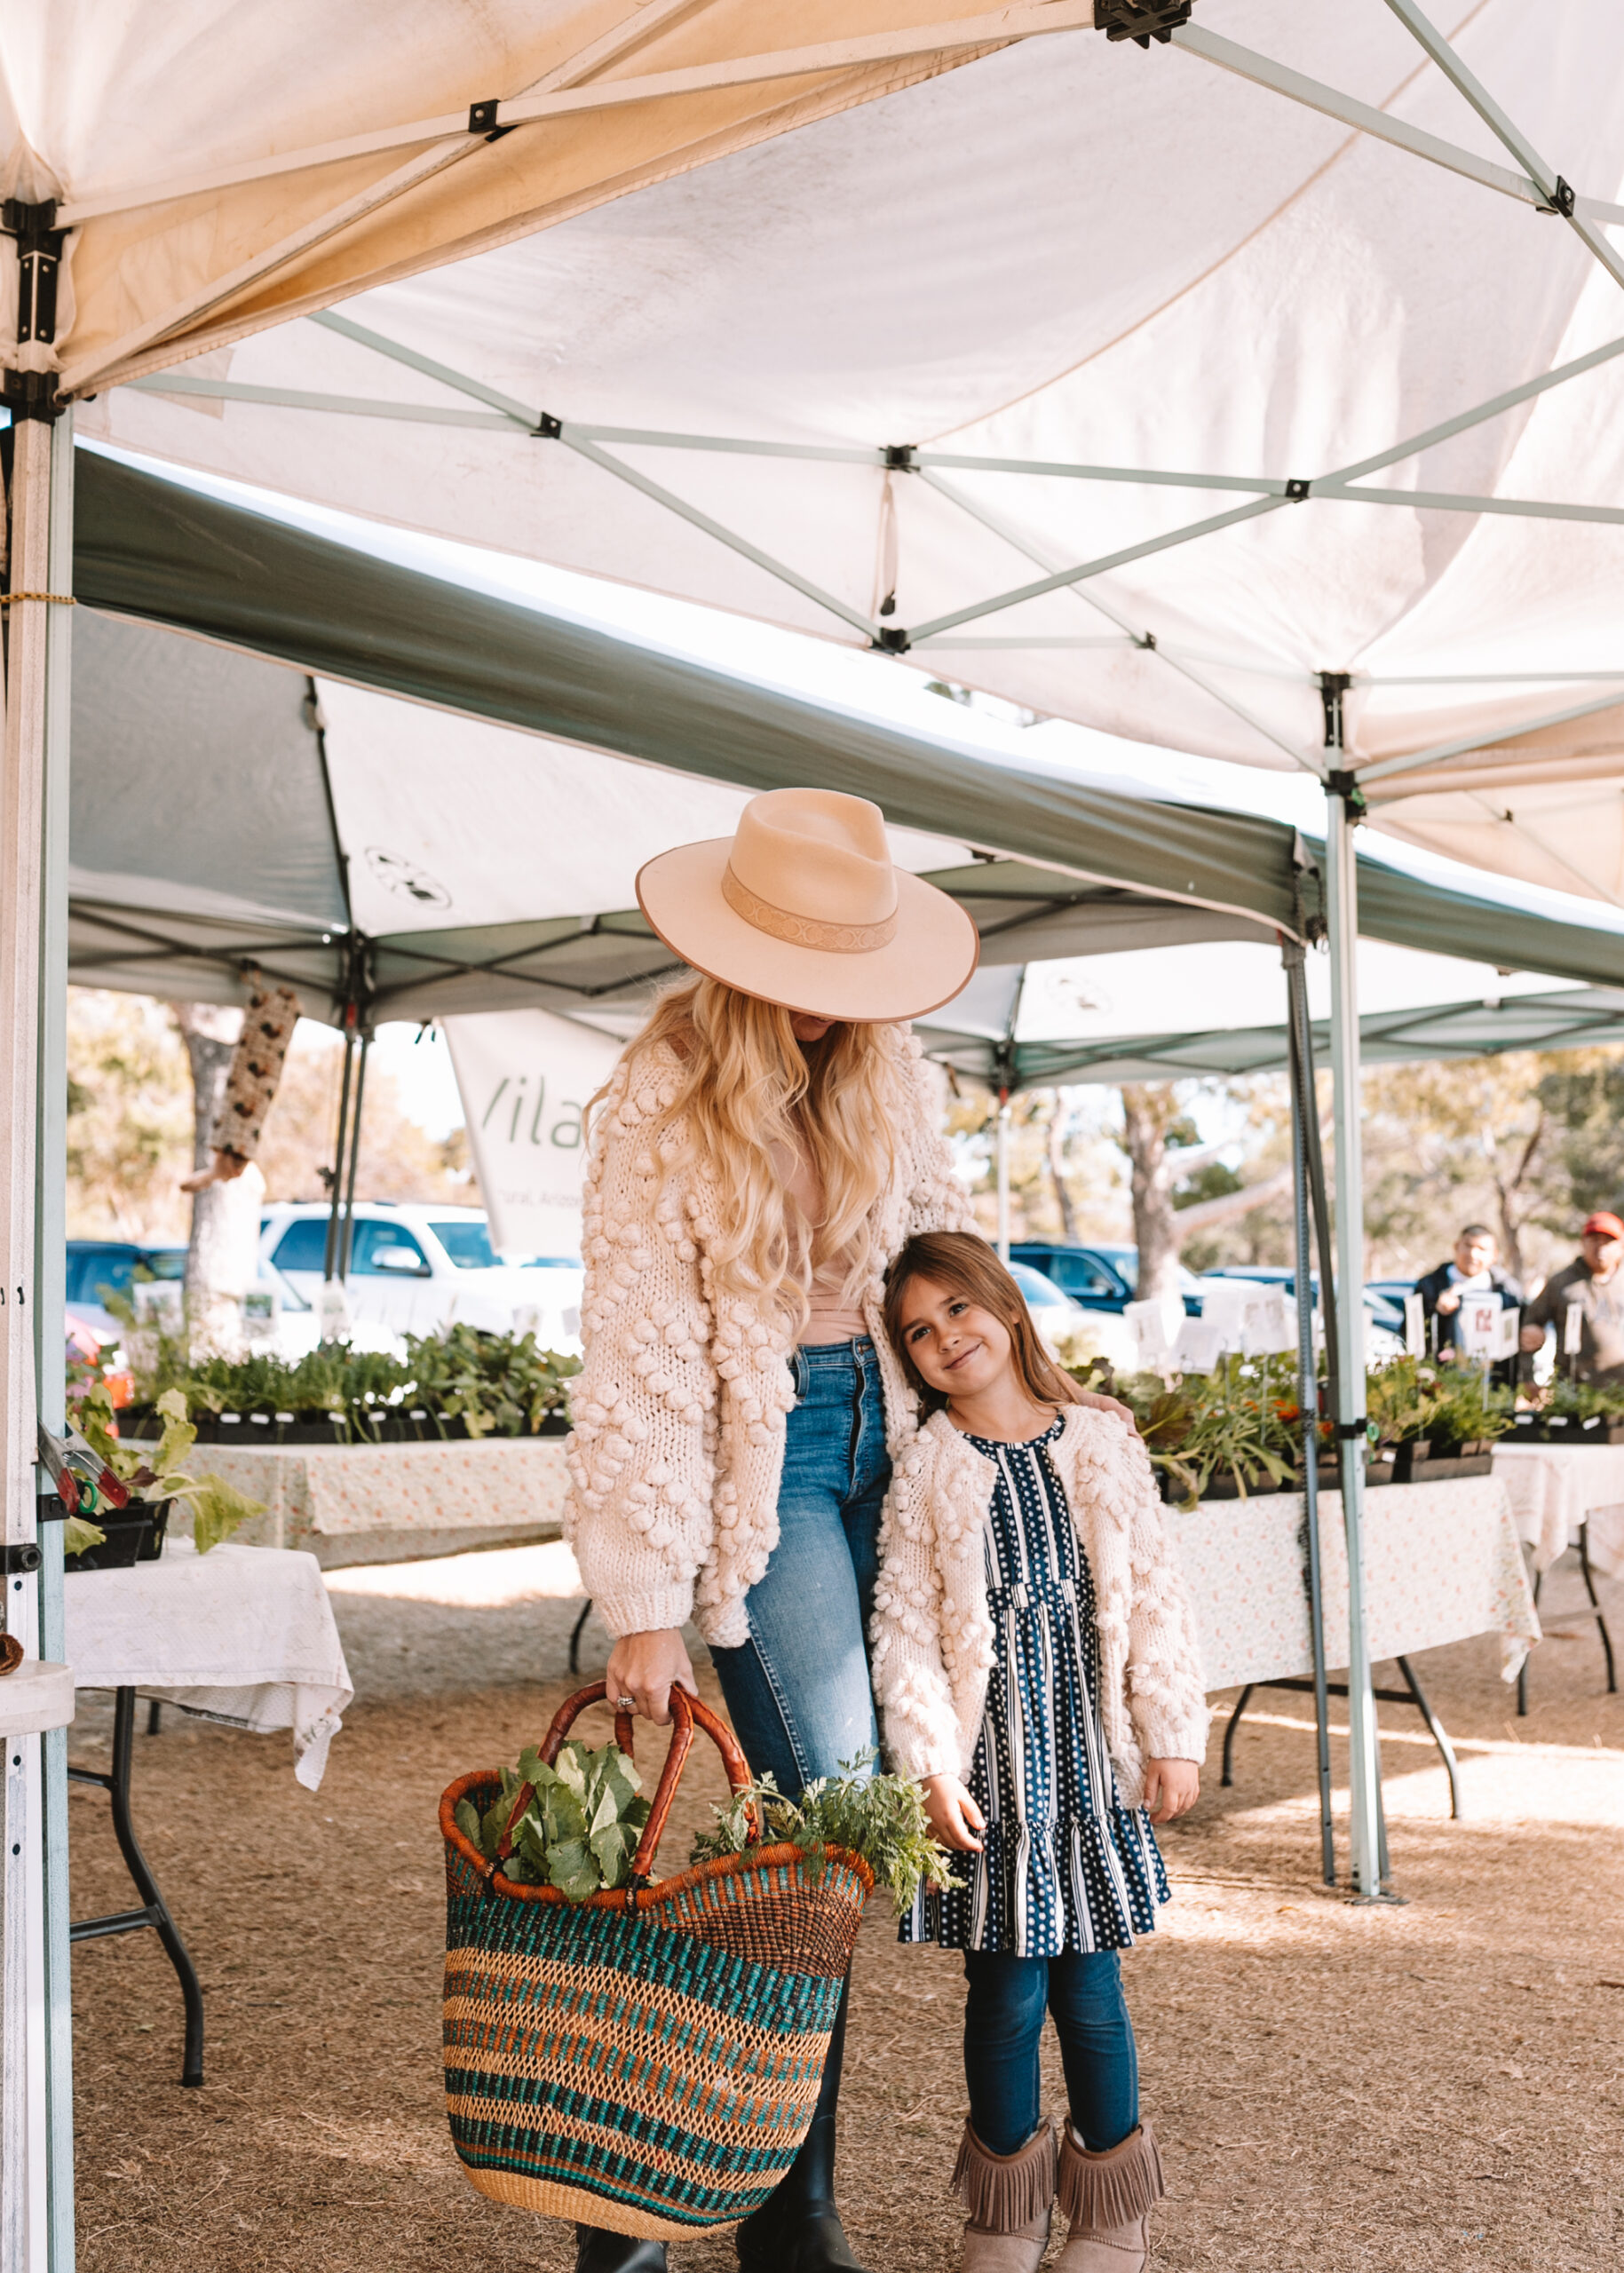 shopping our local arizona farmer's market for fresh produce for a week of healthy cooking! #newyearsgoals #healthyeating #vegetarian